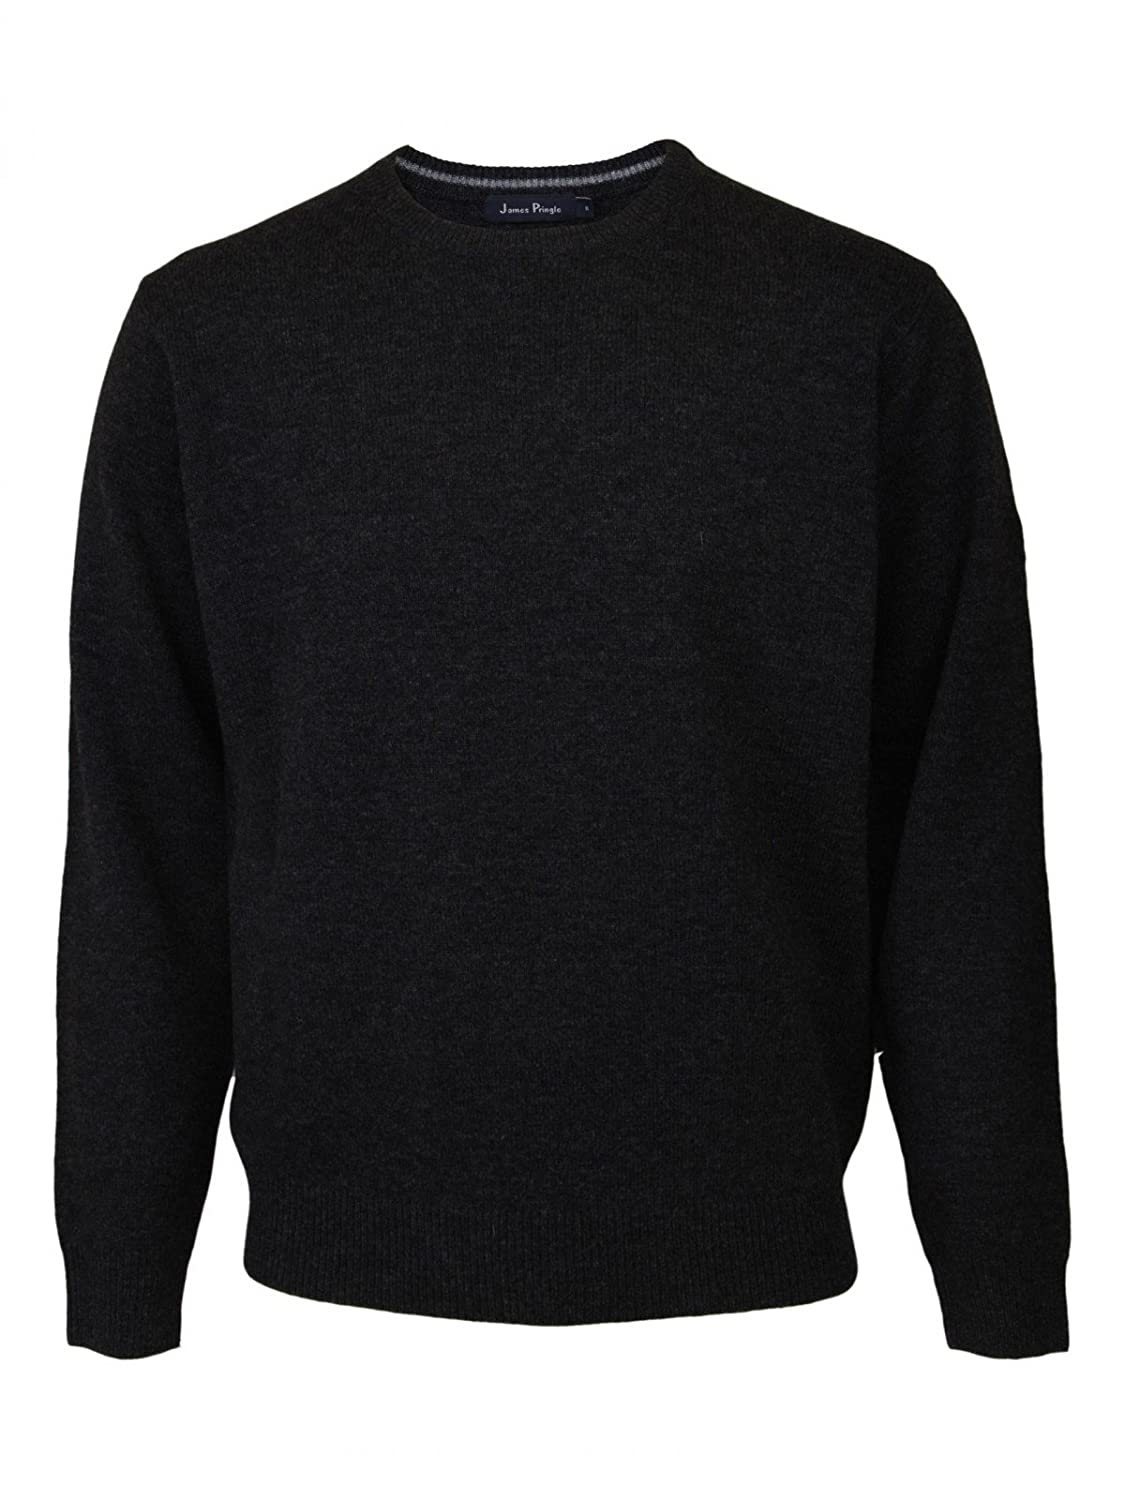 James Pringle Crew Neck Jumper [2075893GY3M] Dark Grey- Size M